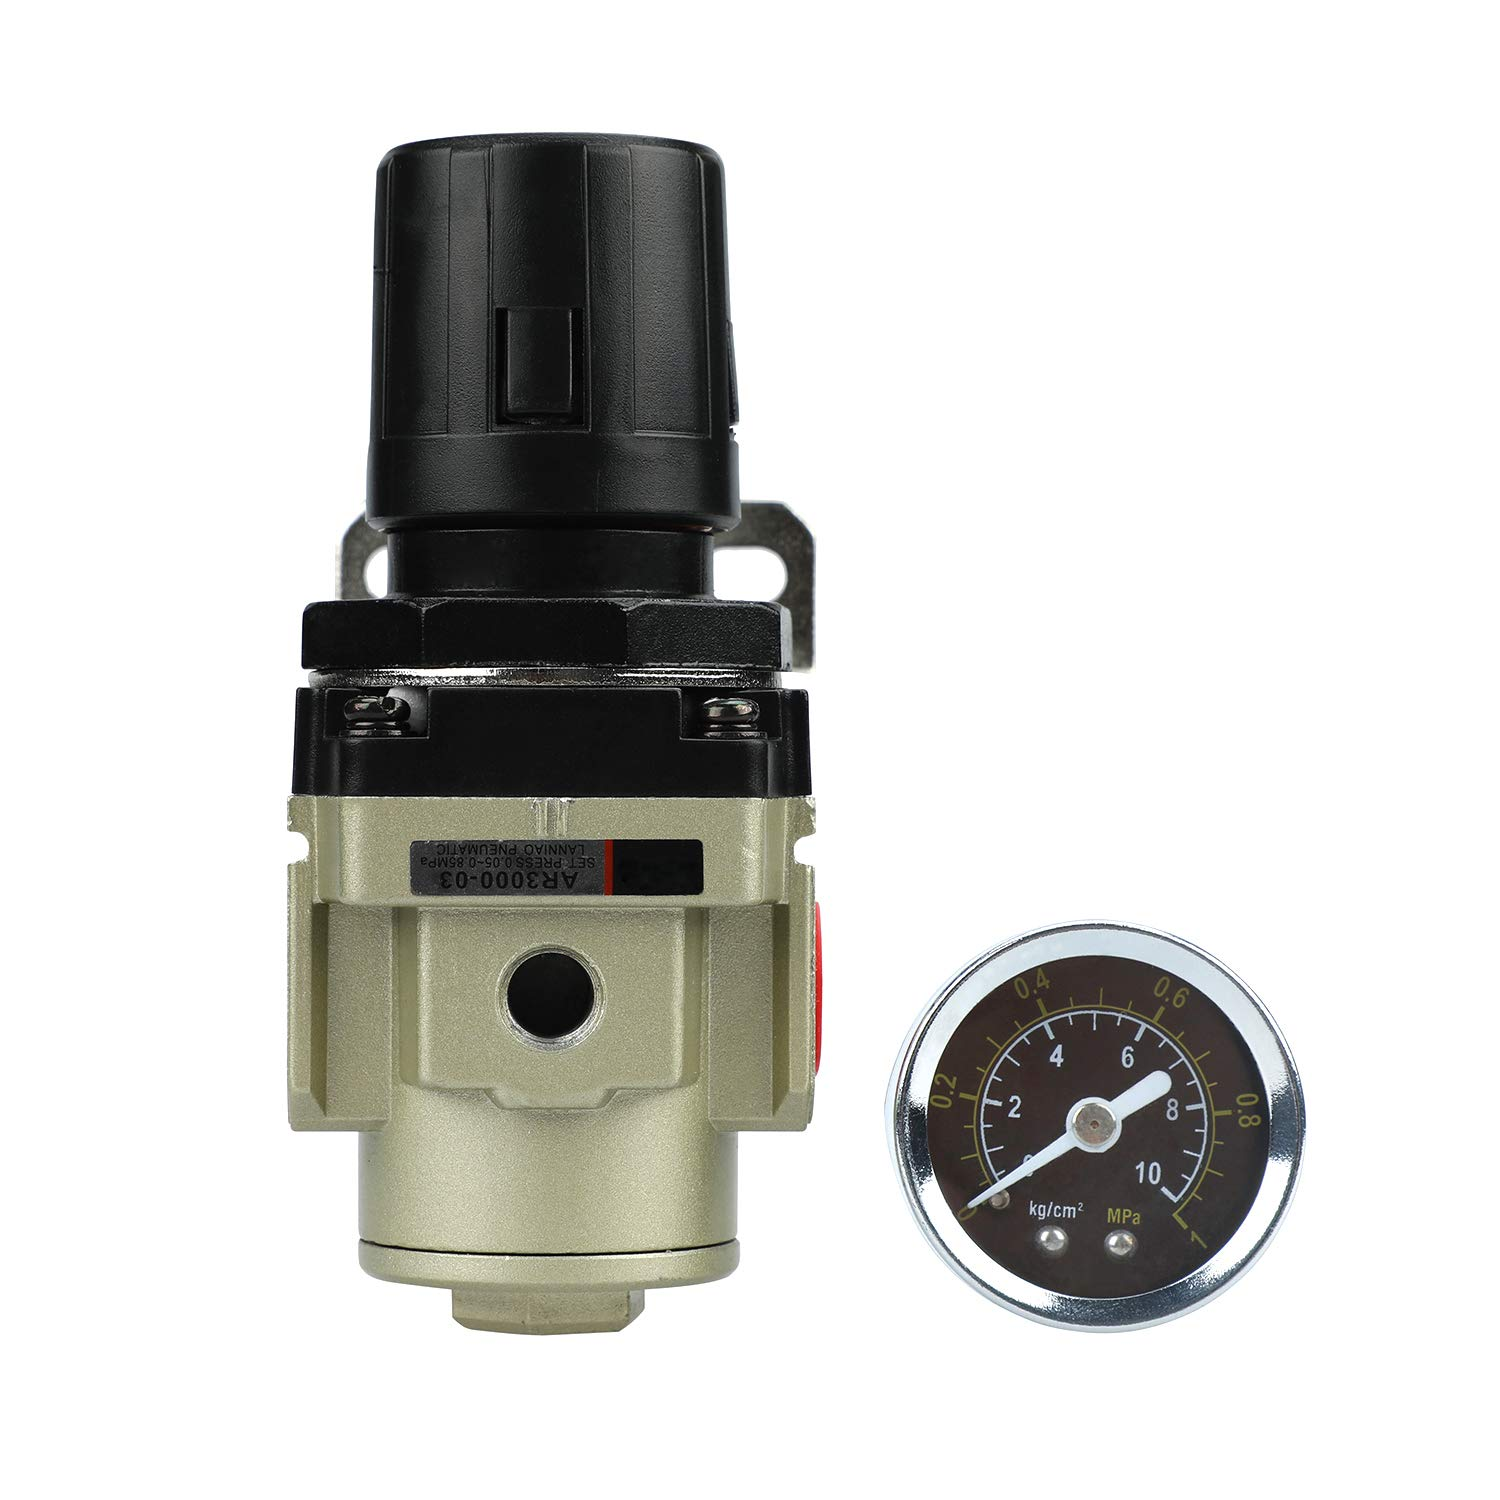 SHININGEYES Air Pressure Regulator 3//8 NPT with Gauge 0-145 PSI